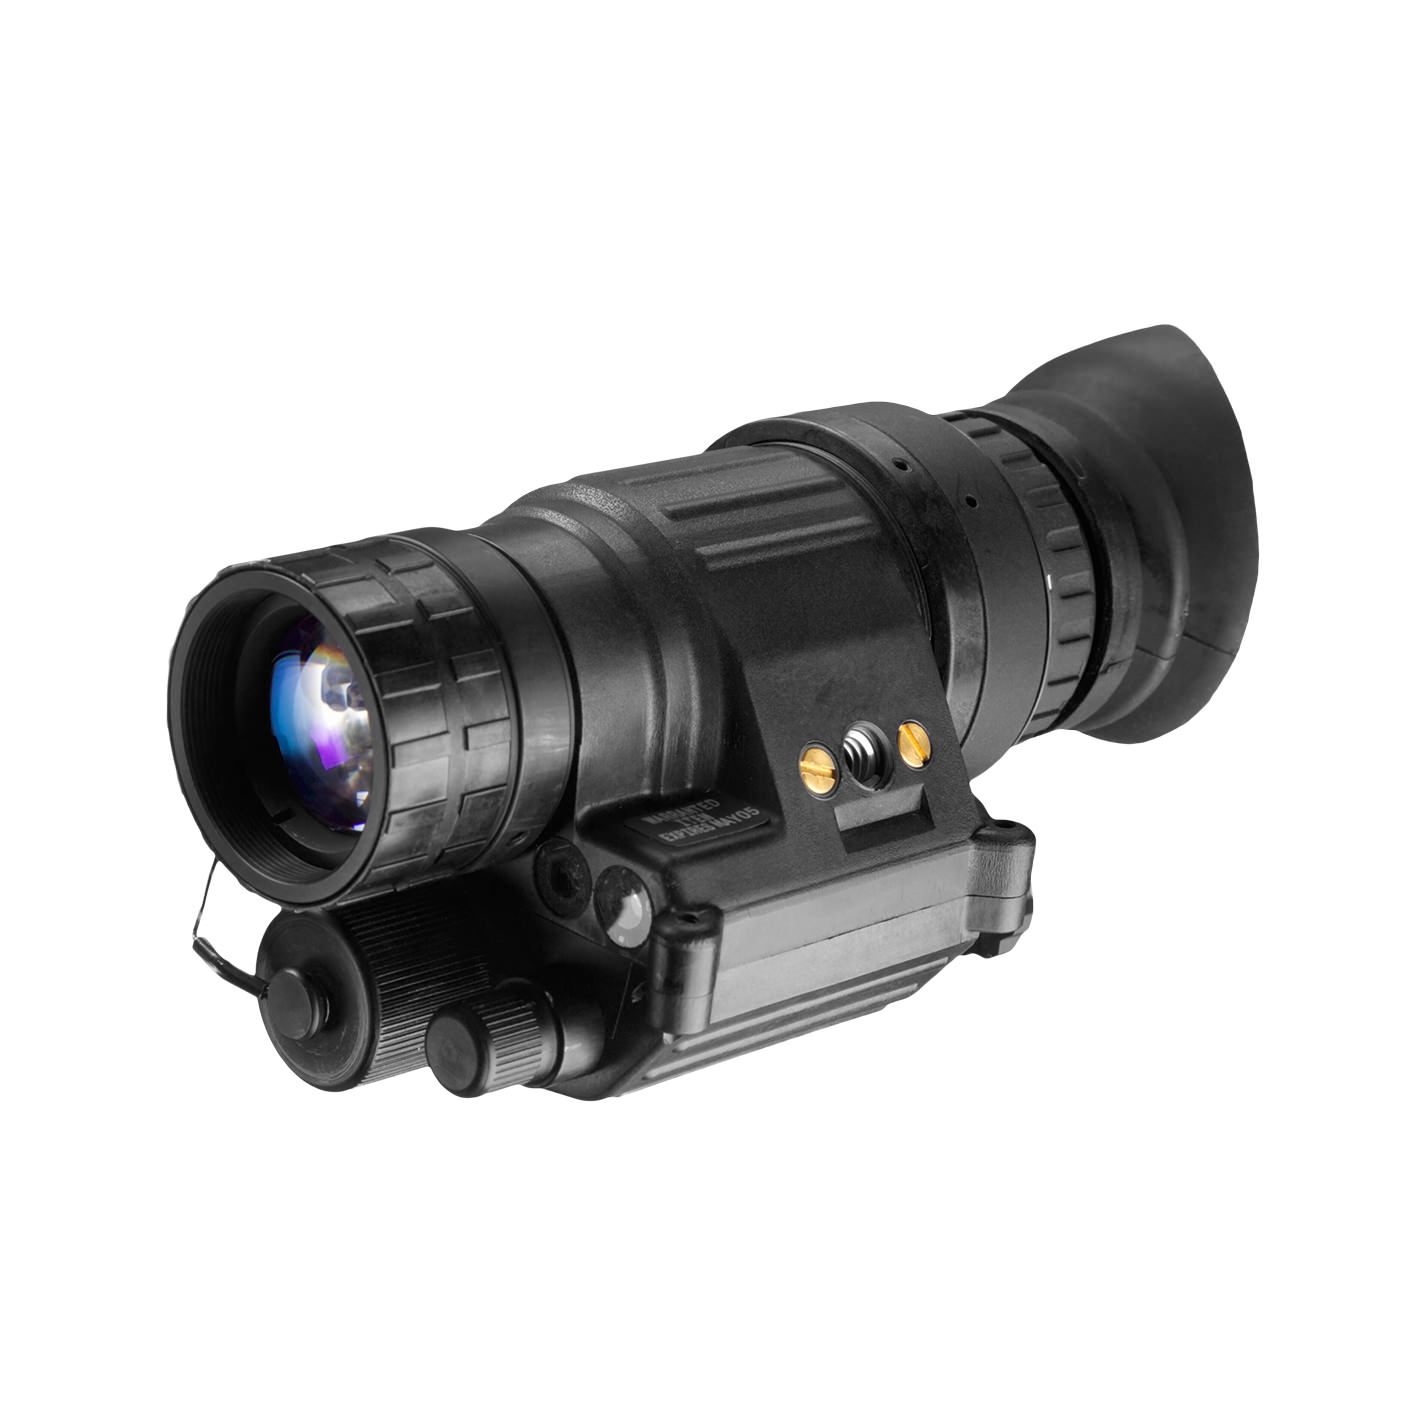 MIL SPEC AN/PVS-14 Night Vision Monocular